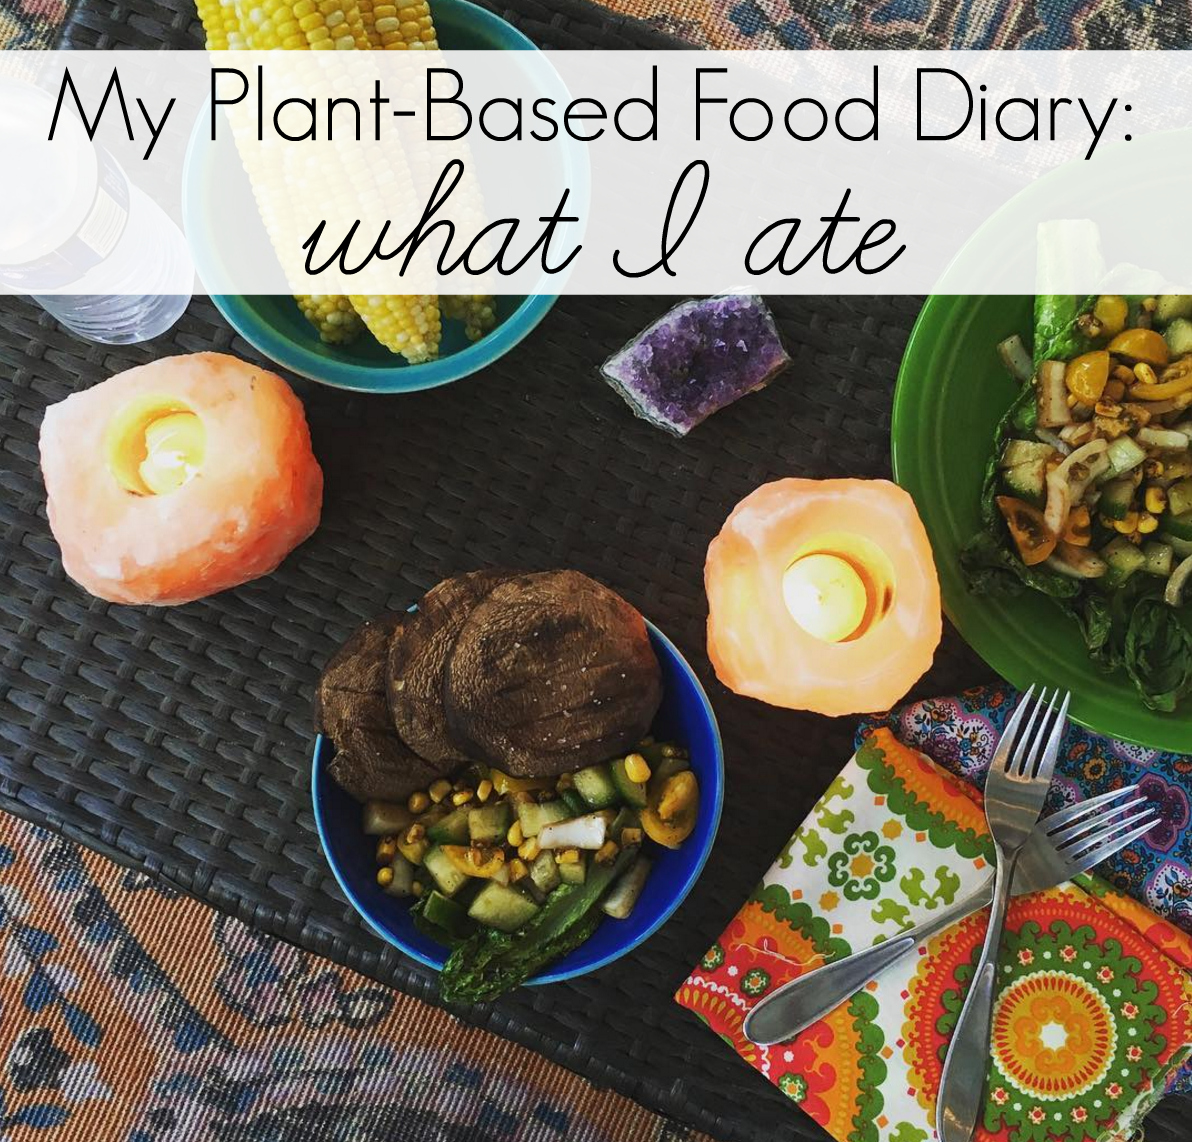 My Plant-Based Food Diary: What I Ate